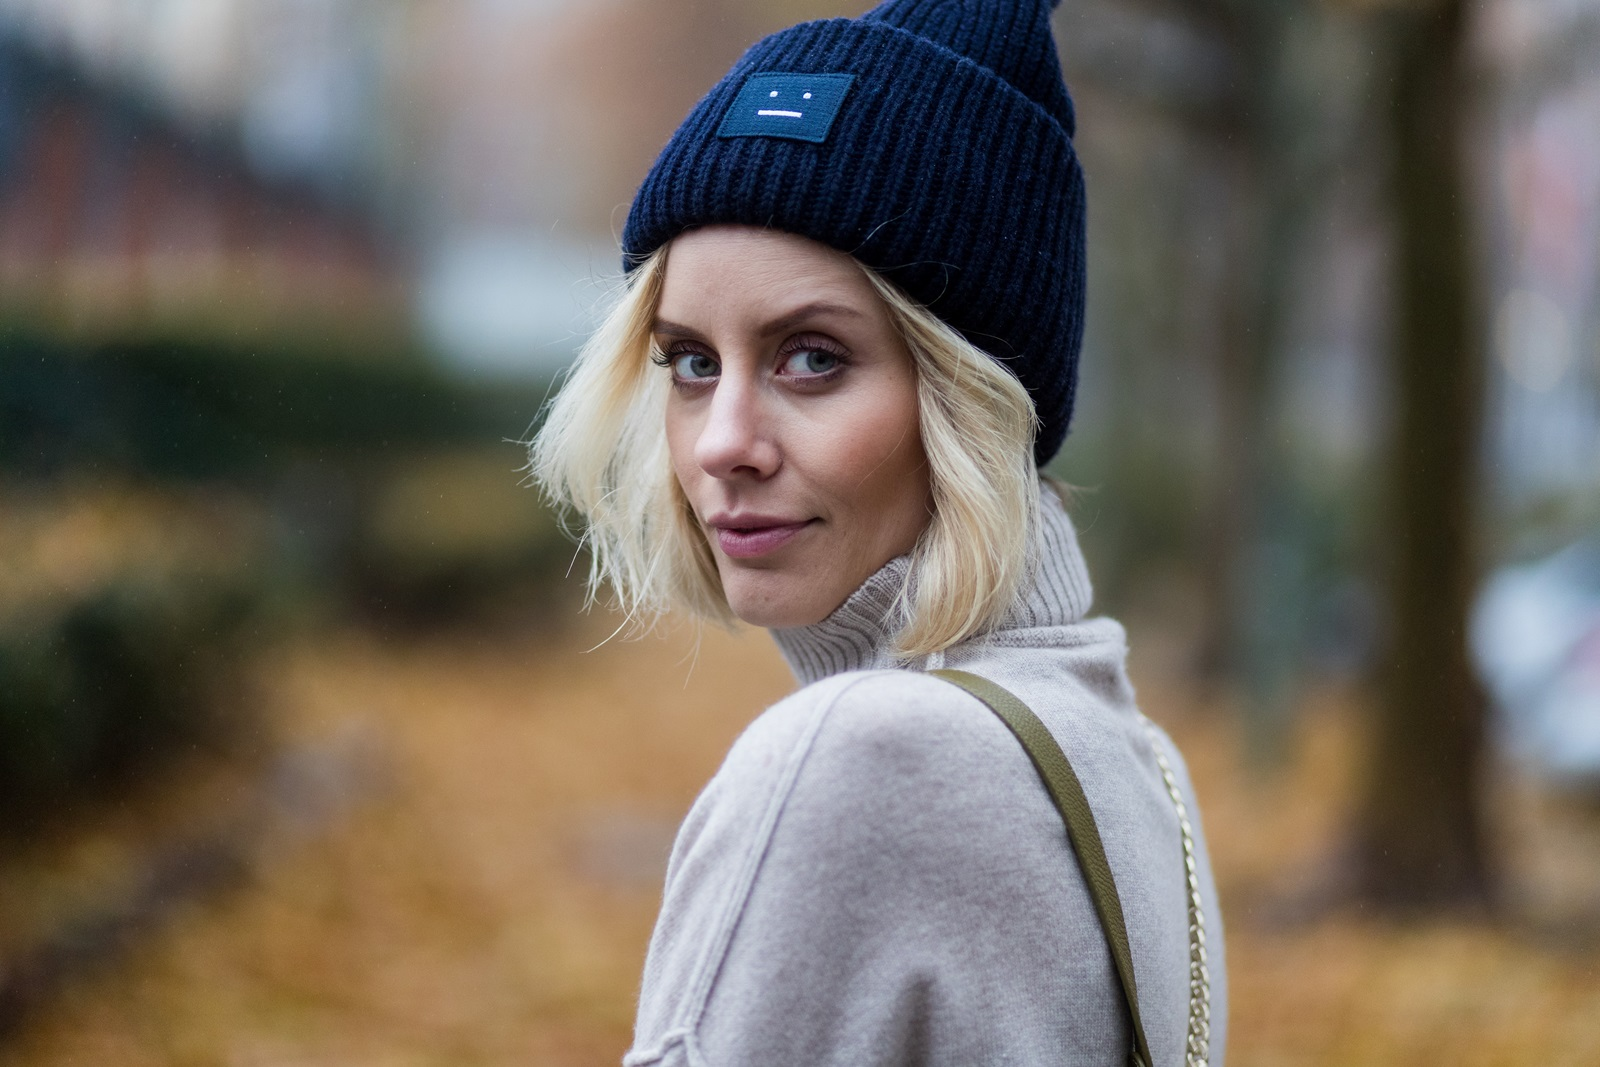 BERLIN, GERMANY - NOVEMBER 16: Lisa Hahnbueck (@lisarvd) wearing Allude Cashmere Turtle Neck Beige Melange, navy Acne Studios Pansy Beanie Hat on November 16, 2016 in Berlin, Germany. (Photo by Christian Vierig/Getty Images) *** Local Caption *** Lisa Hahnbueck